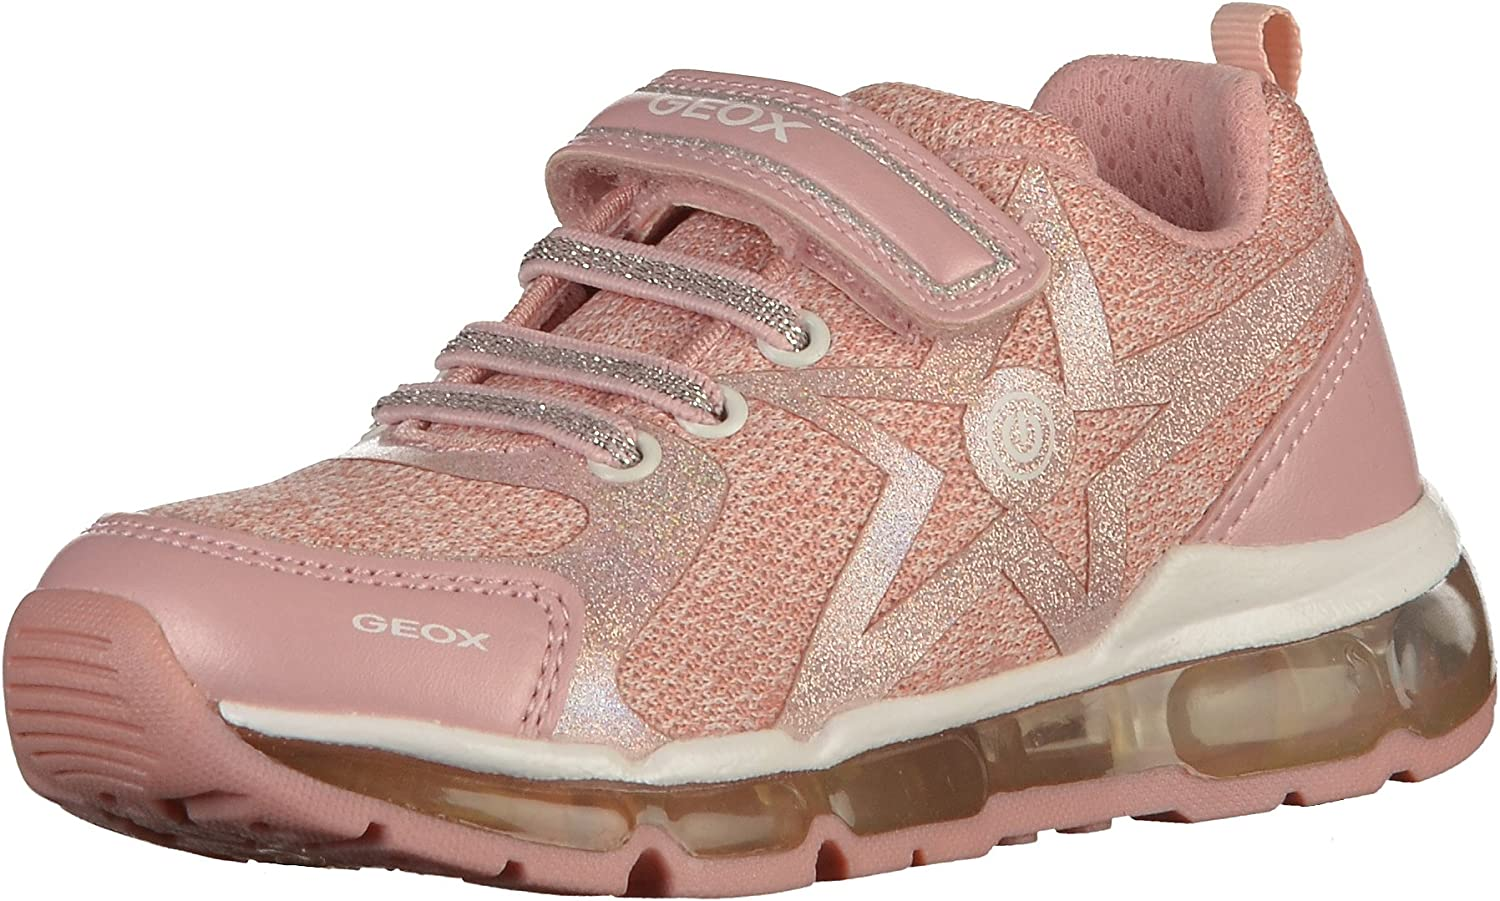 Geox Unisex-Child Android SALENEW very popular! Sneaker 18 High order Girl